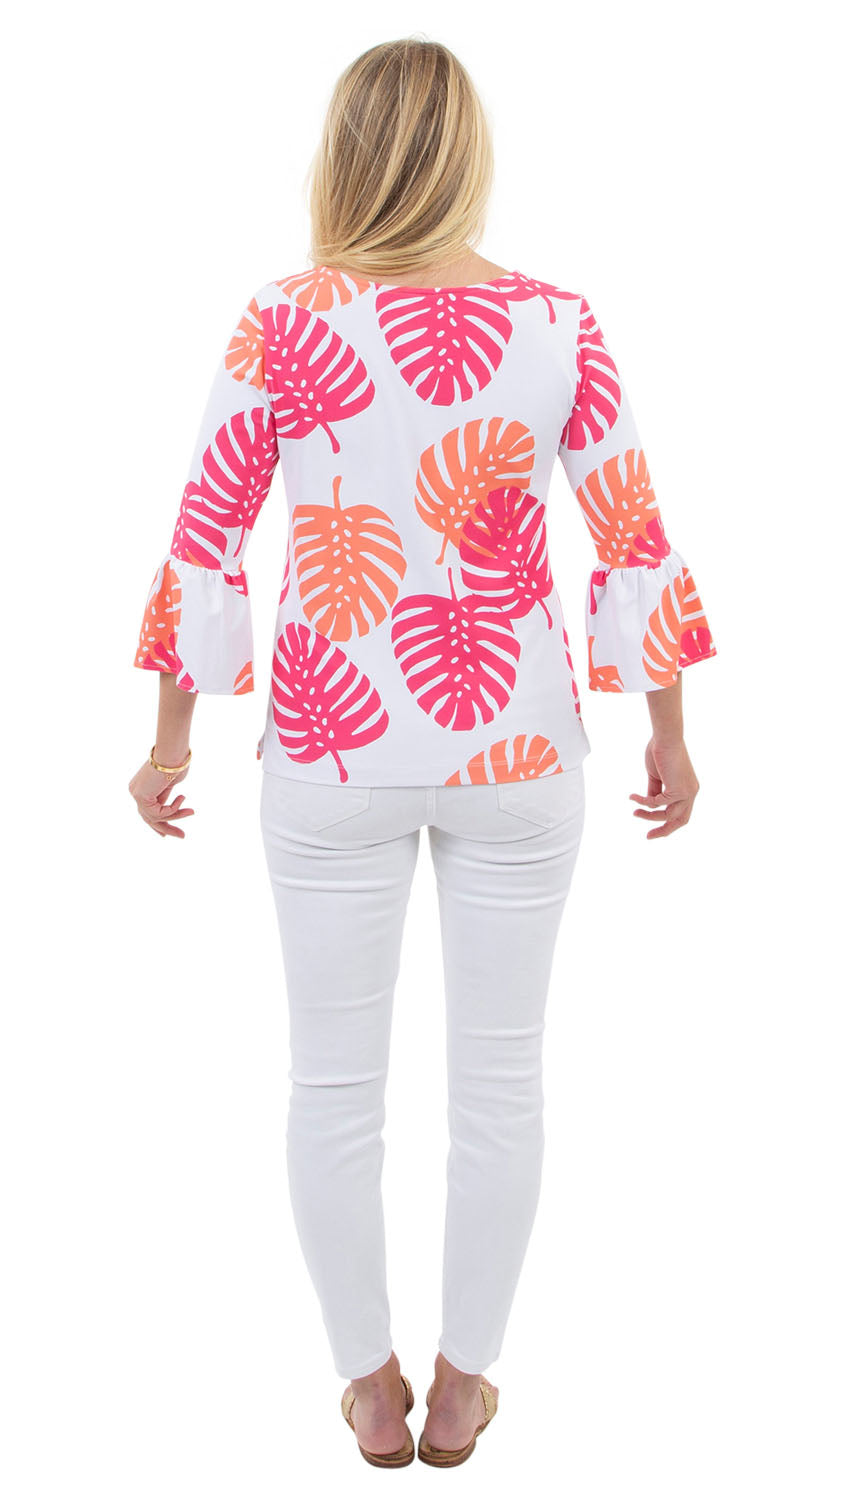 Haley Top - Hot Pink/Salmon Dancing Palms- SAMPLE FINAL SALE